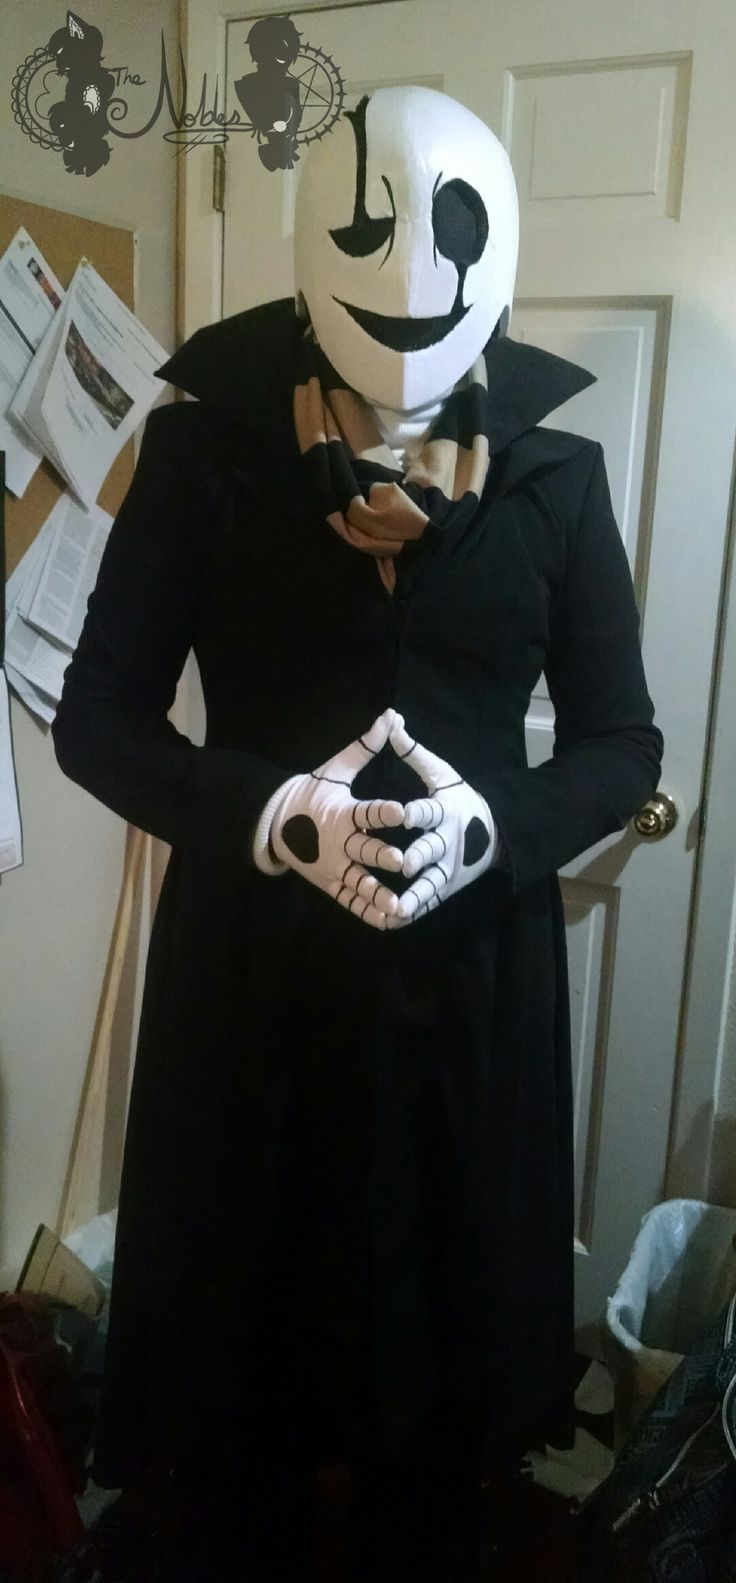 _cosplay__w_d__gaster_from_undertale__2016__by_noblebutlersebastian-da4d5f0.png (1024×2203)